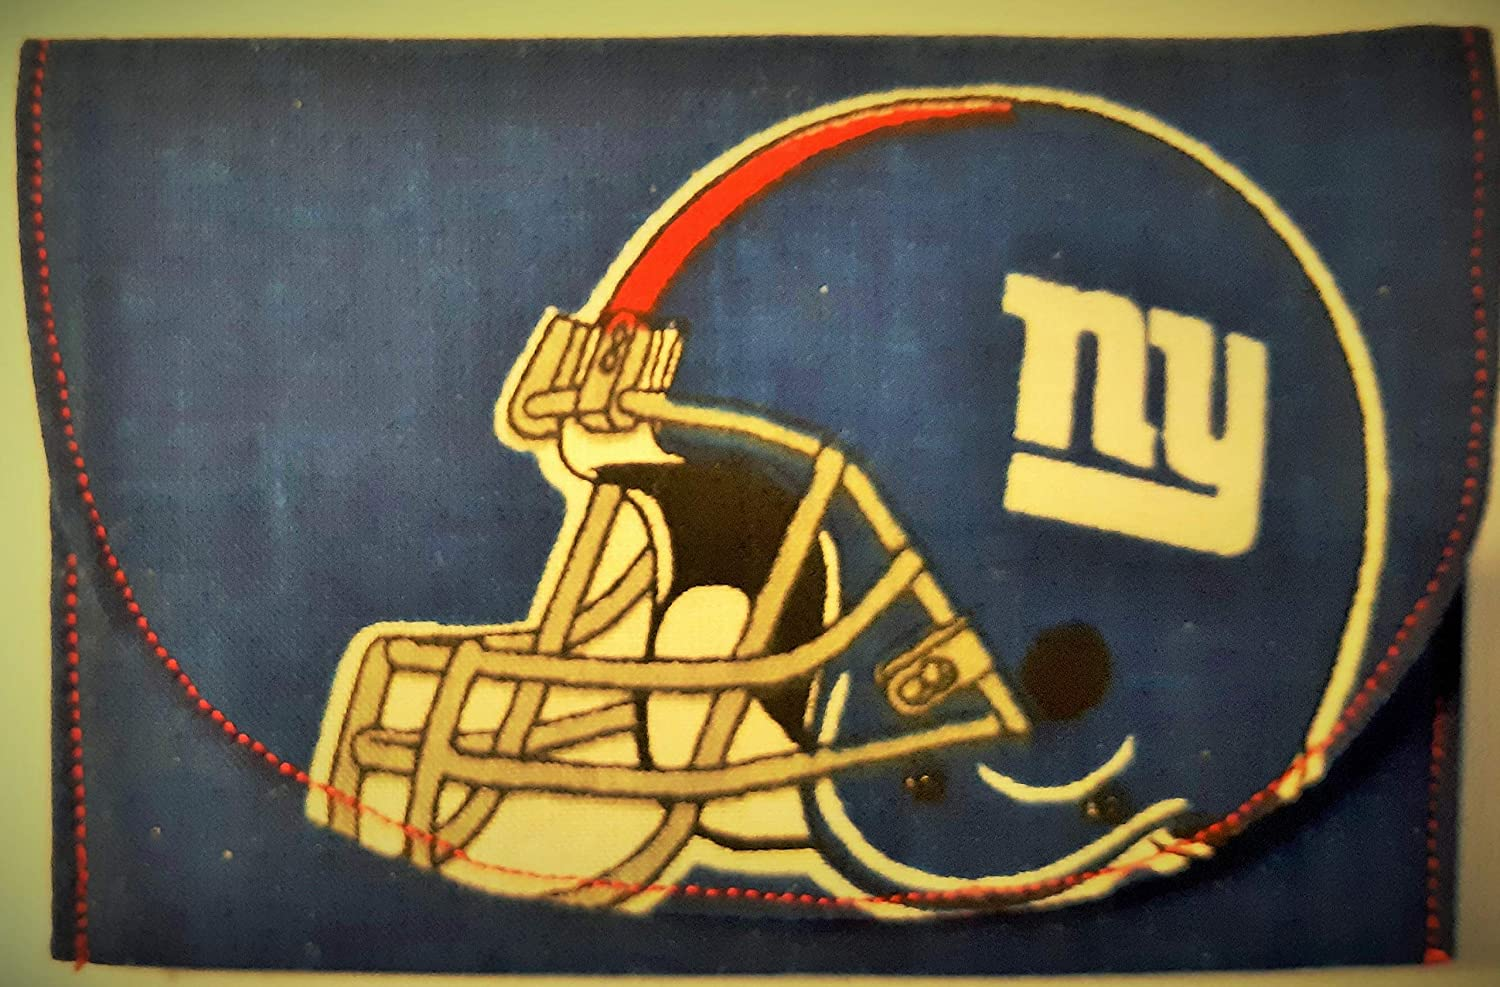 Great Gift. Dollar Bills Holder Gift Card Licensed New York Giants Fabric Credit Card Mini Wallet Business Cards ID